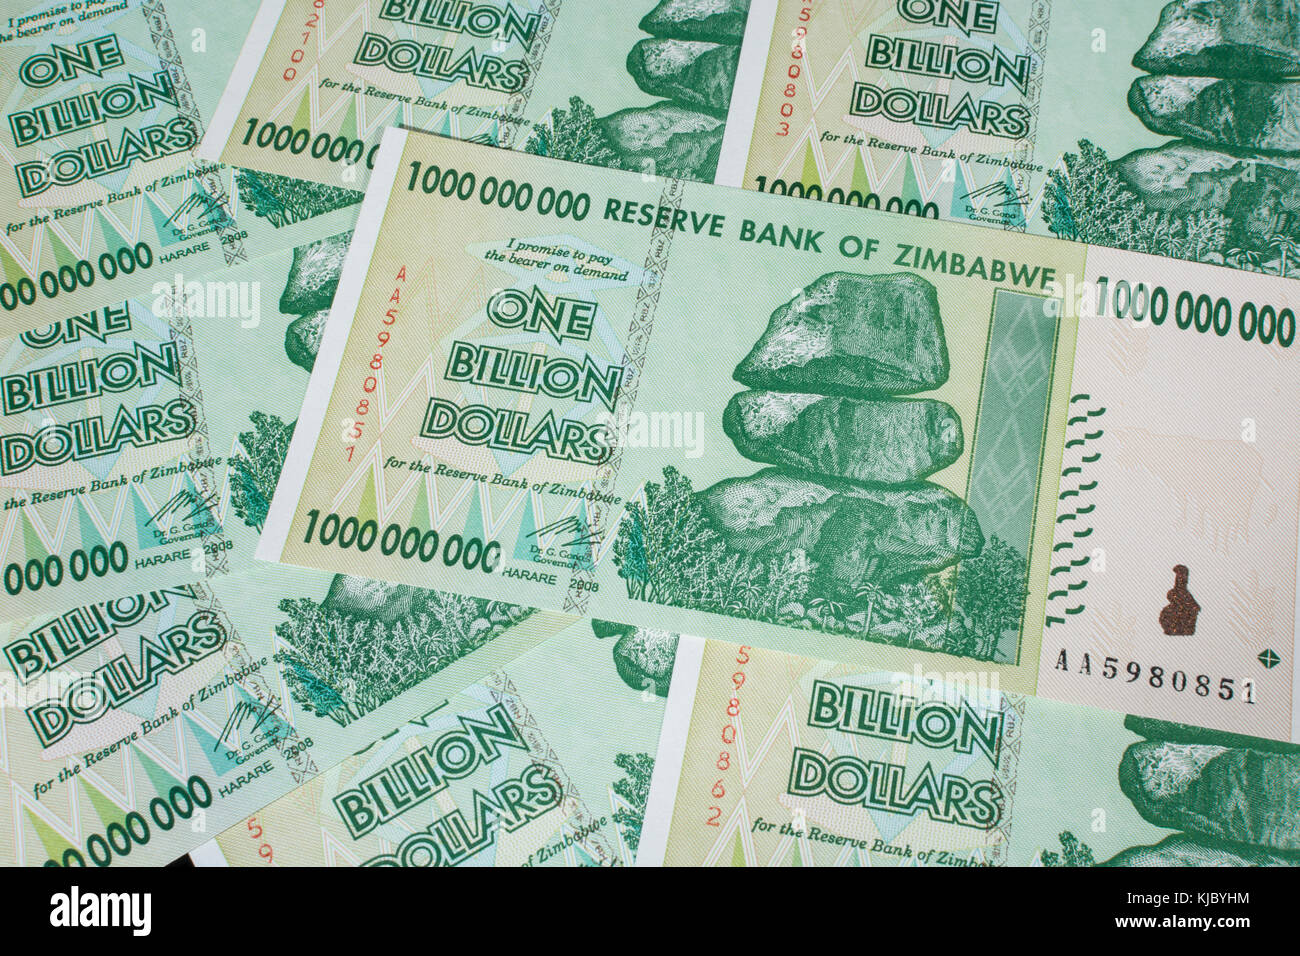 zimbabwe: a worthless currency essay The business models used during the zimbabwe dollar era continued into the multiple-currency era and companies have failed to cope with models which required a large workforce and more.